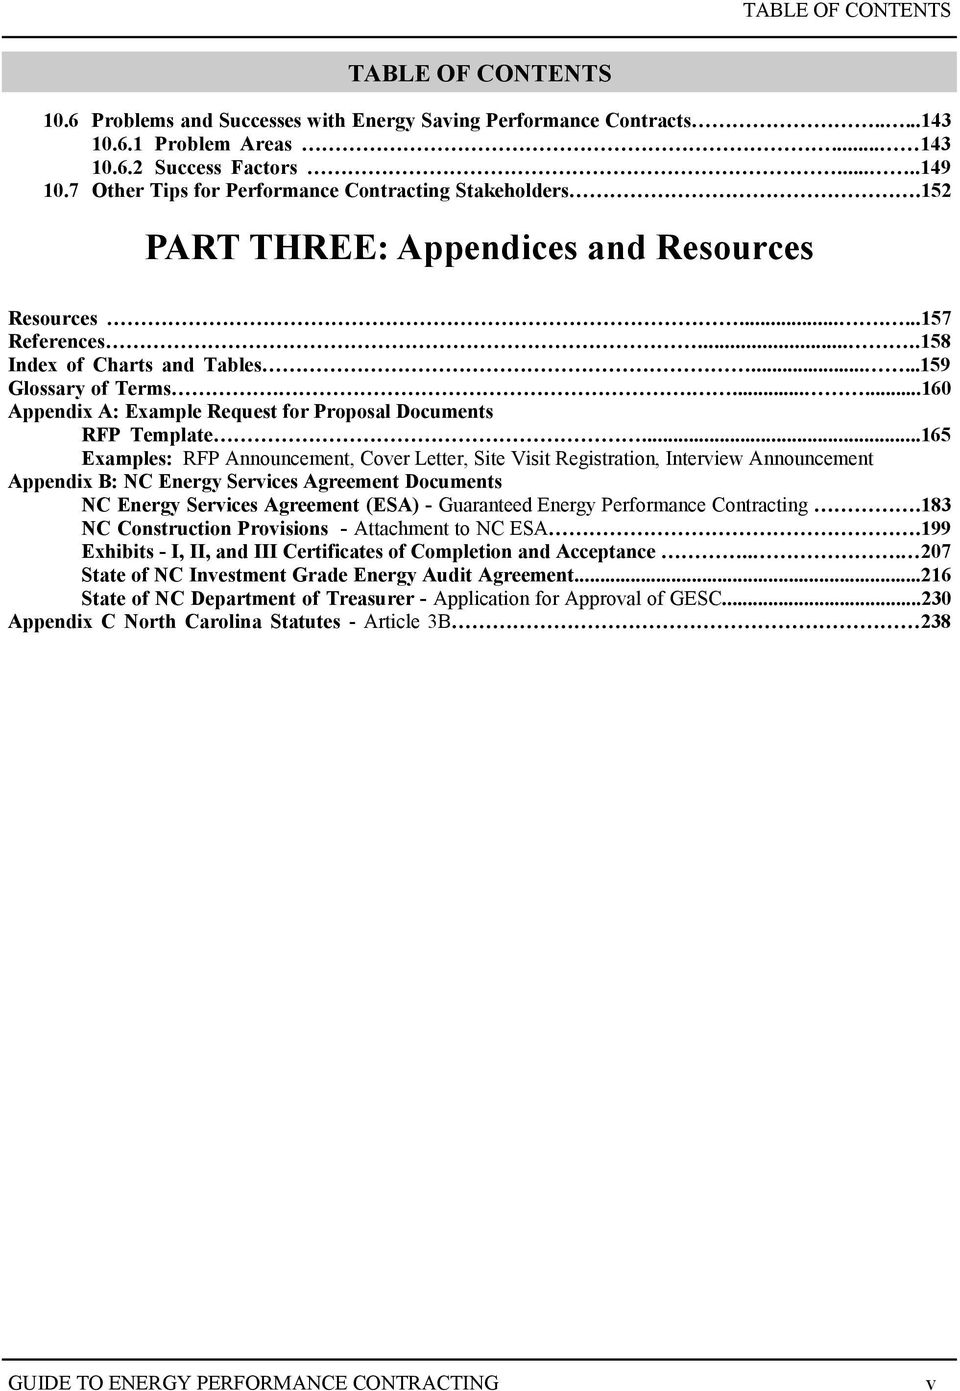 Appendix for research proposal